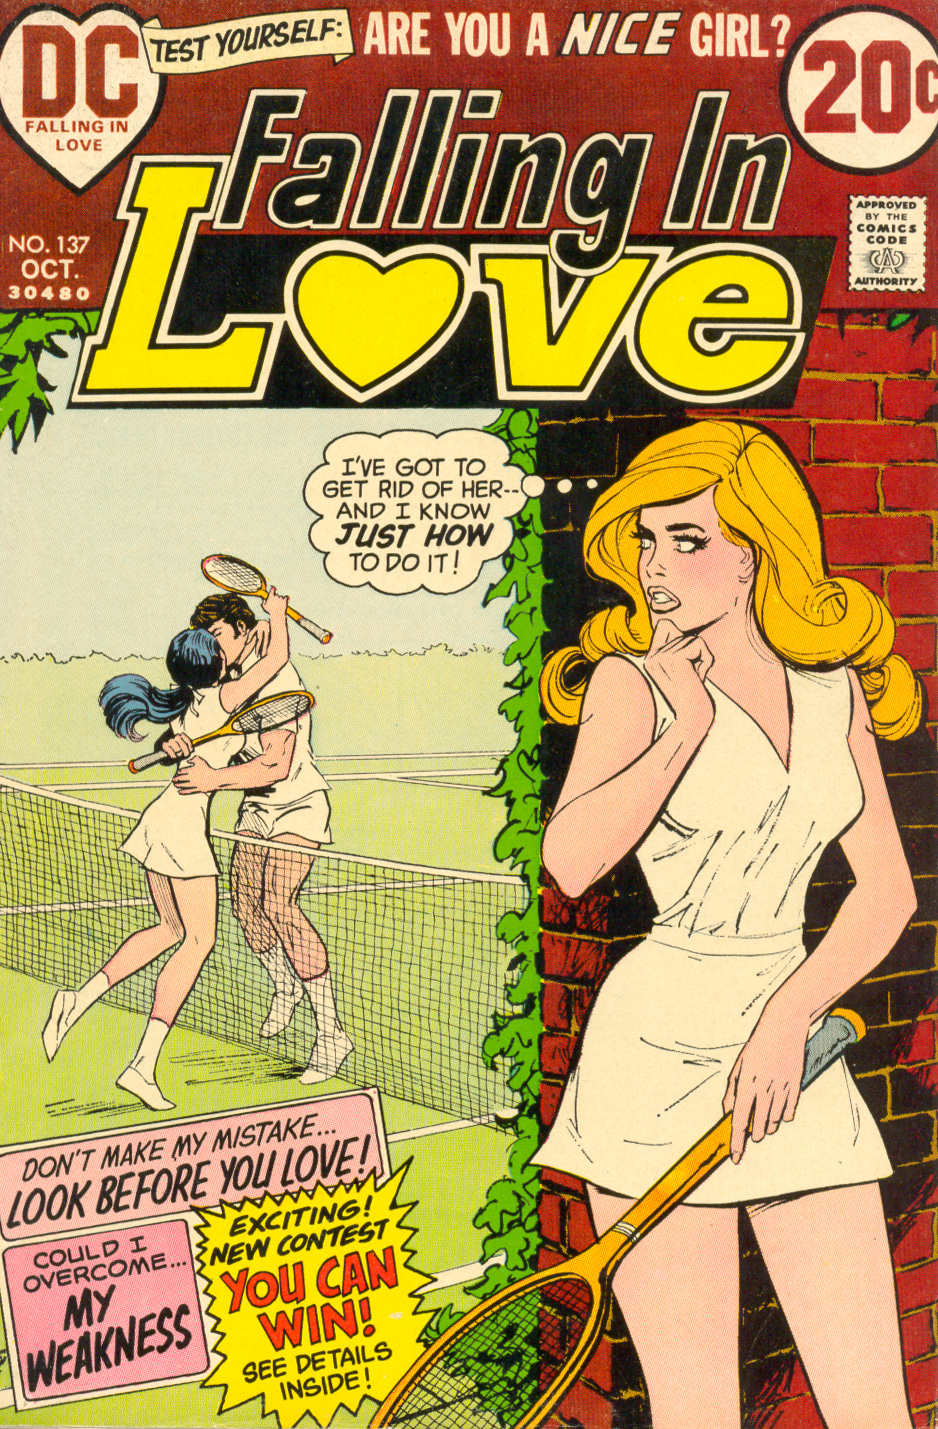 Falling in Love #137 (October 1972)